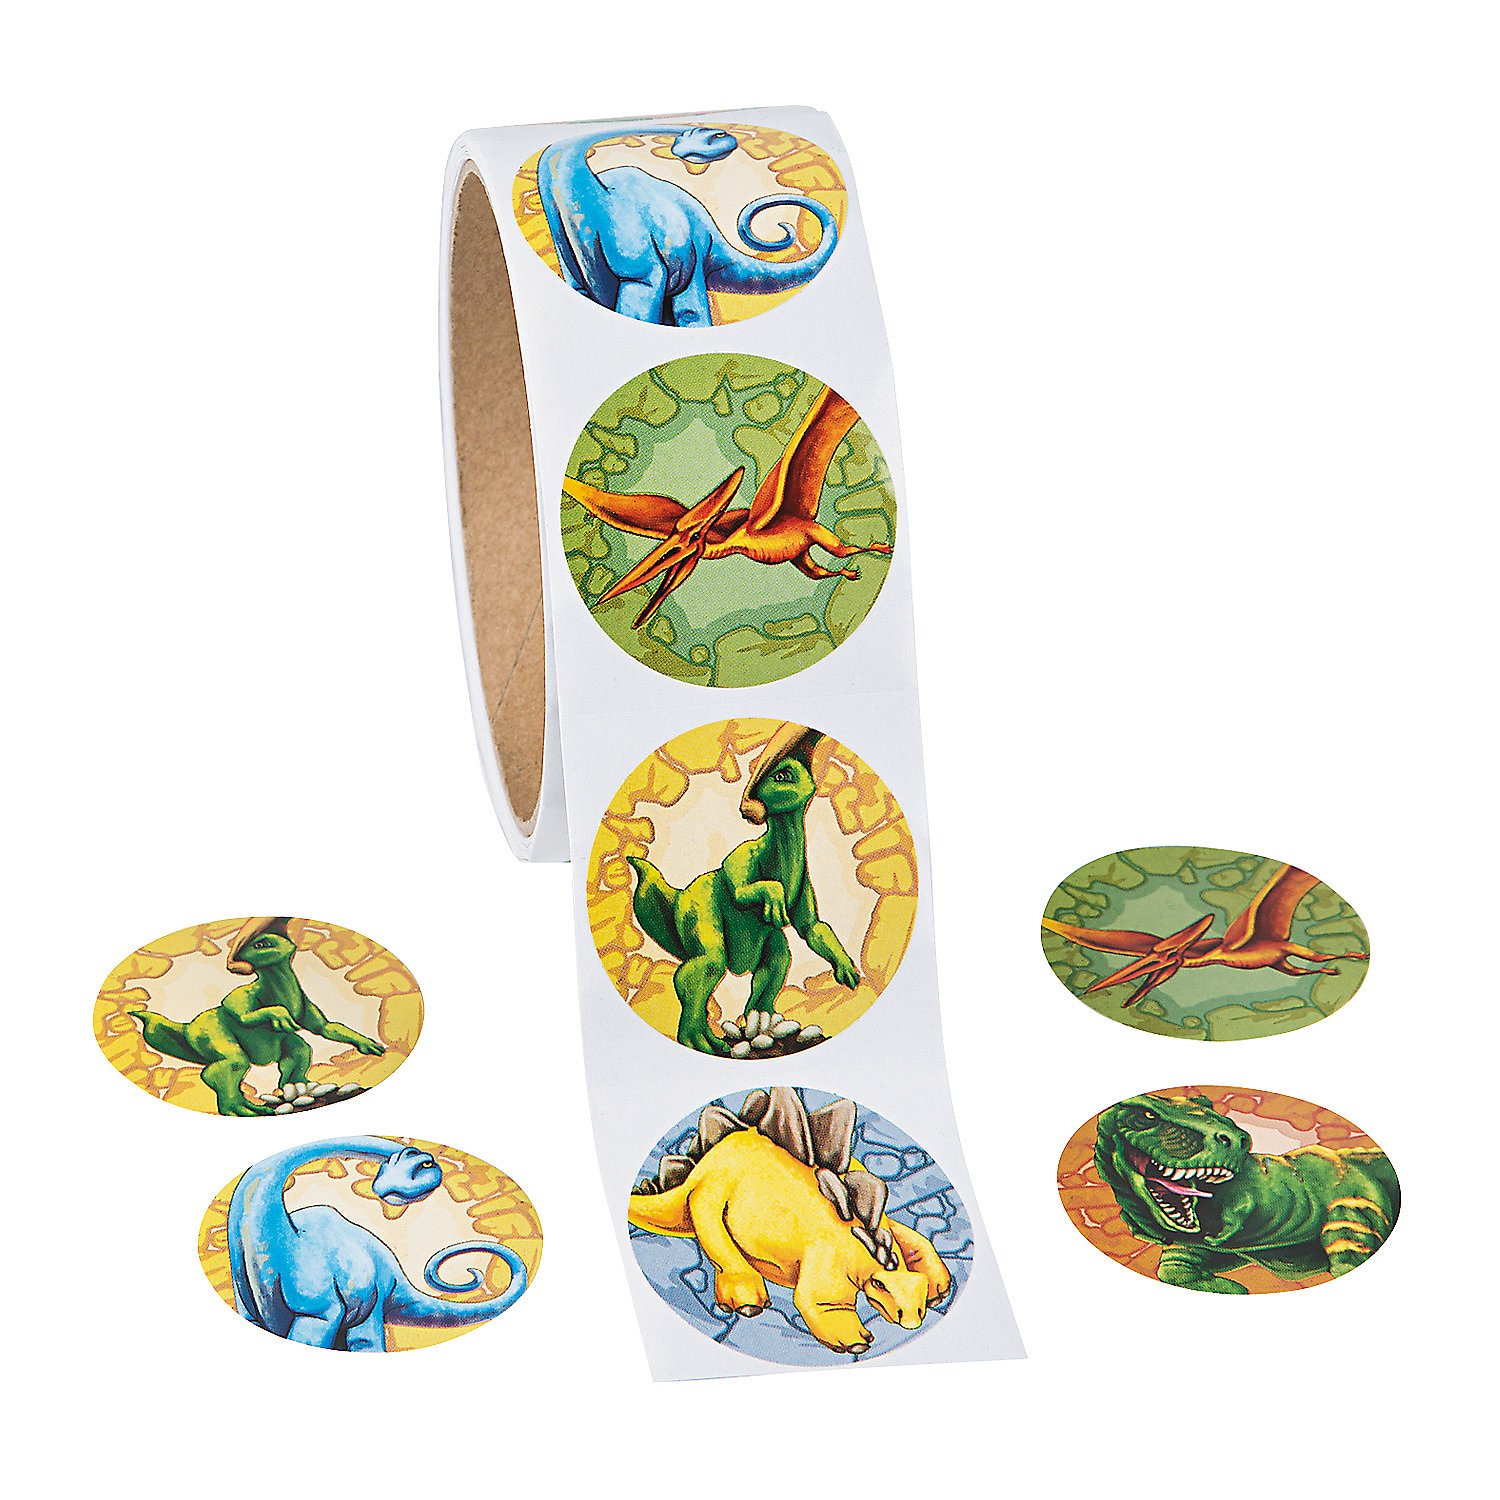 William & Douglas Dinosaur Party Bundle | Supplies Favors and Giveaways for Children's Dinosaur Birthday Party | Dinosaur Stickers, Cellophane Bags, Rings & Stampers by William & Douglas (Image #3)